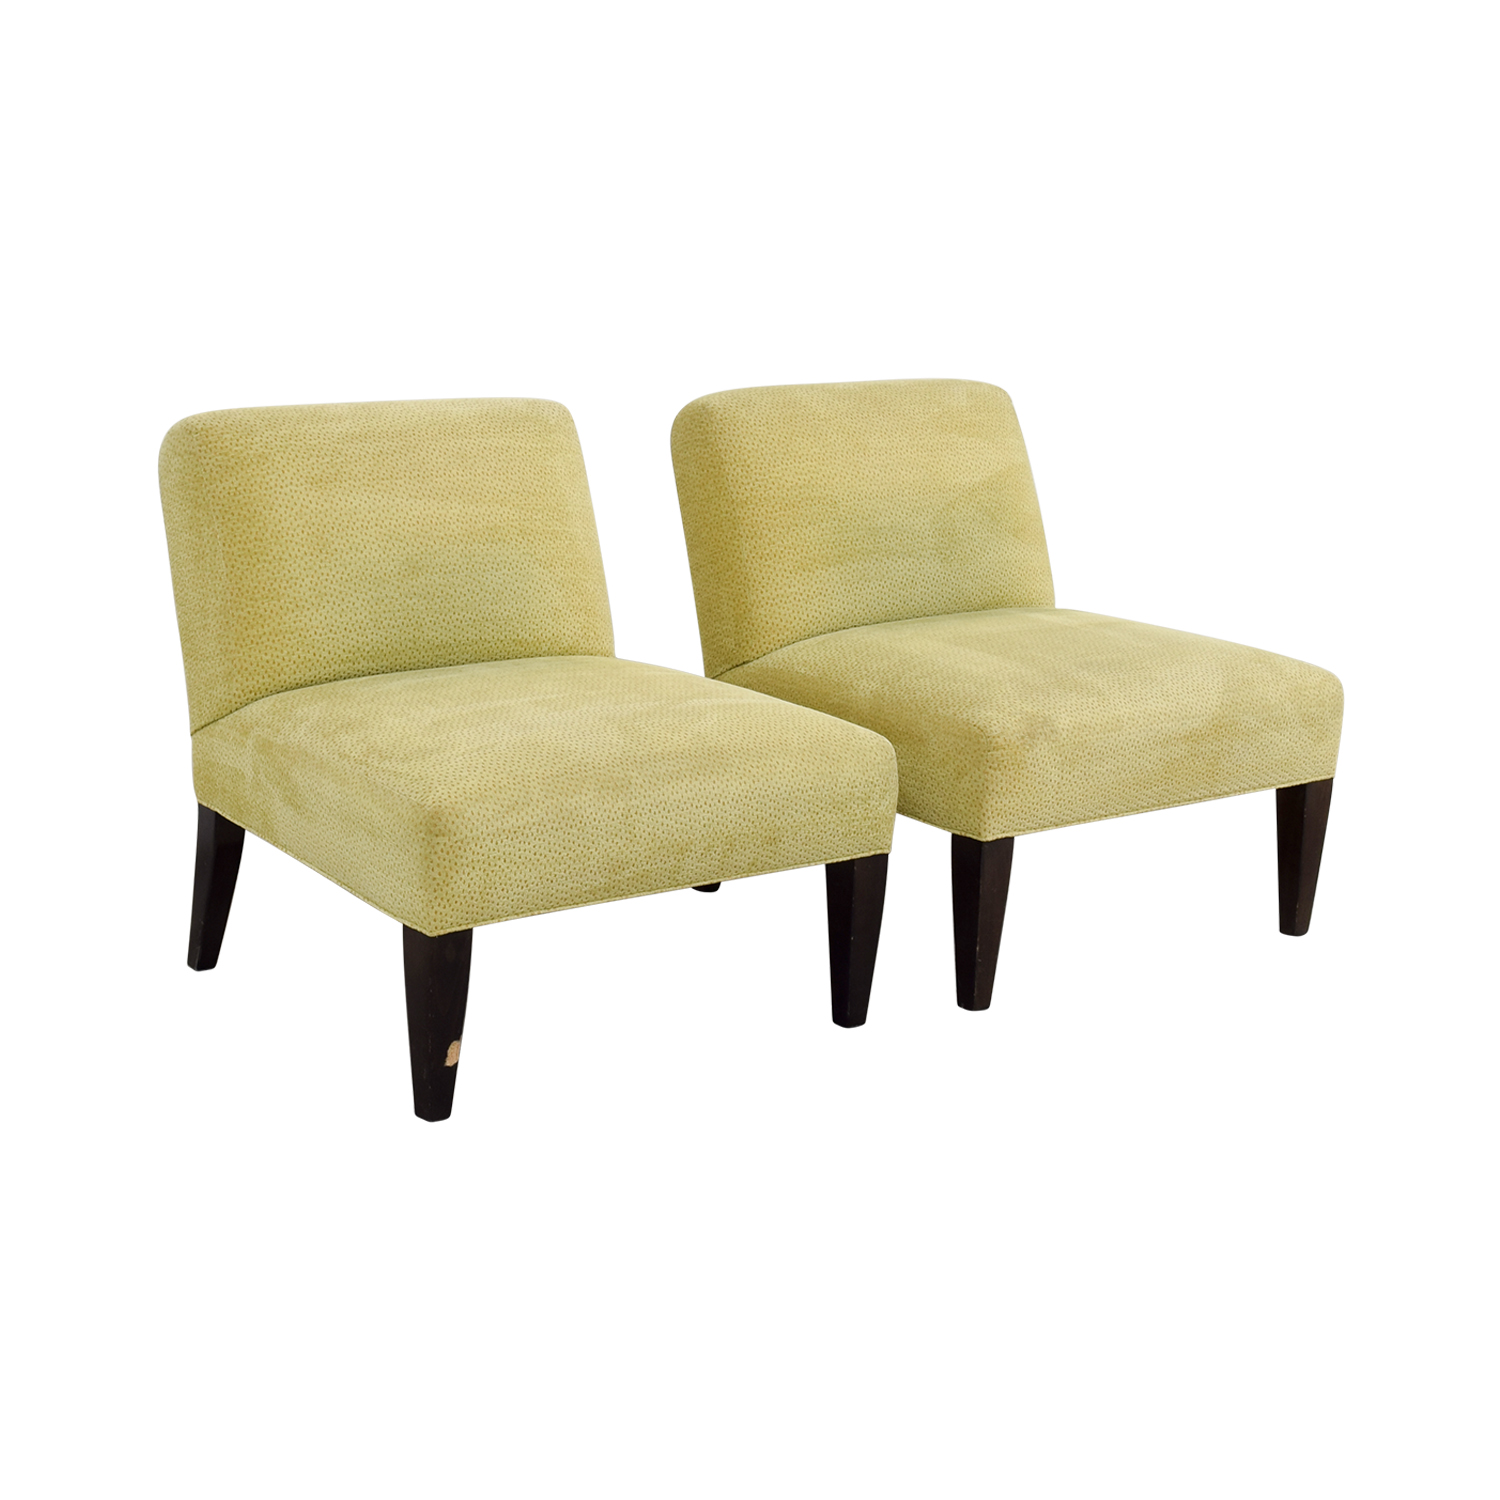 Custom Yellow Club Chairs